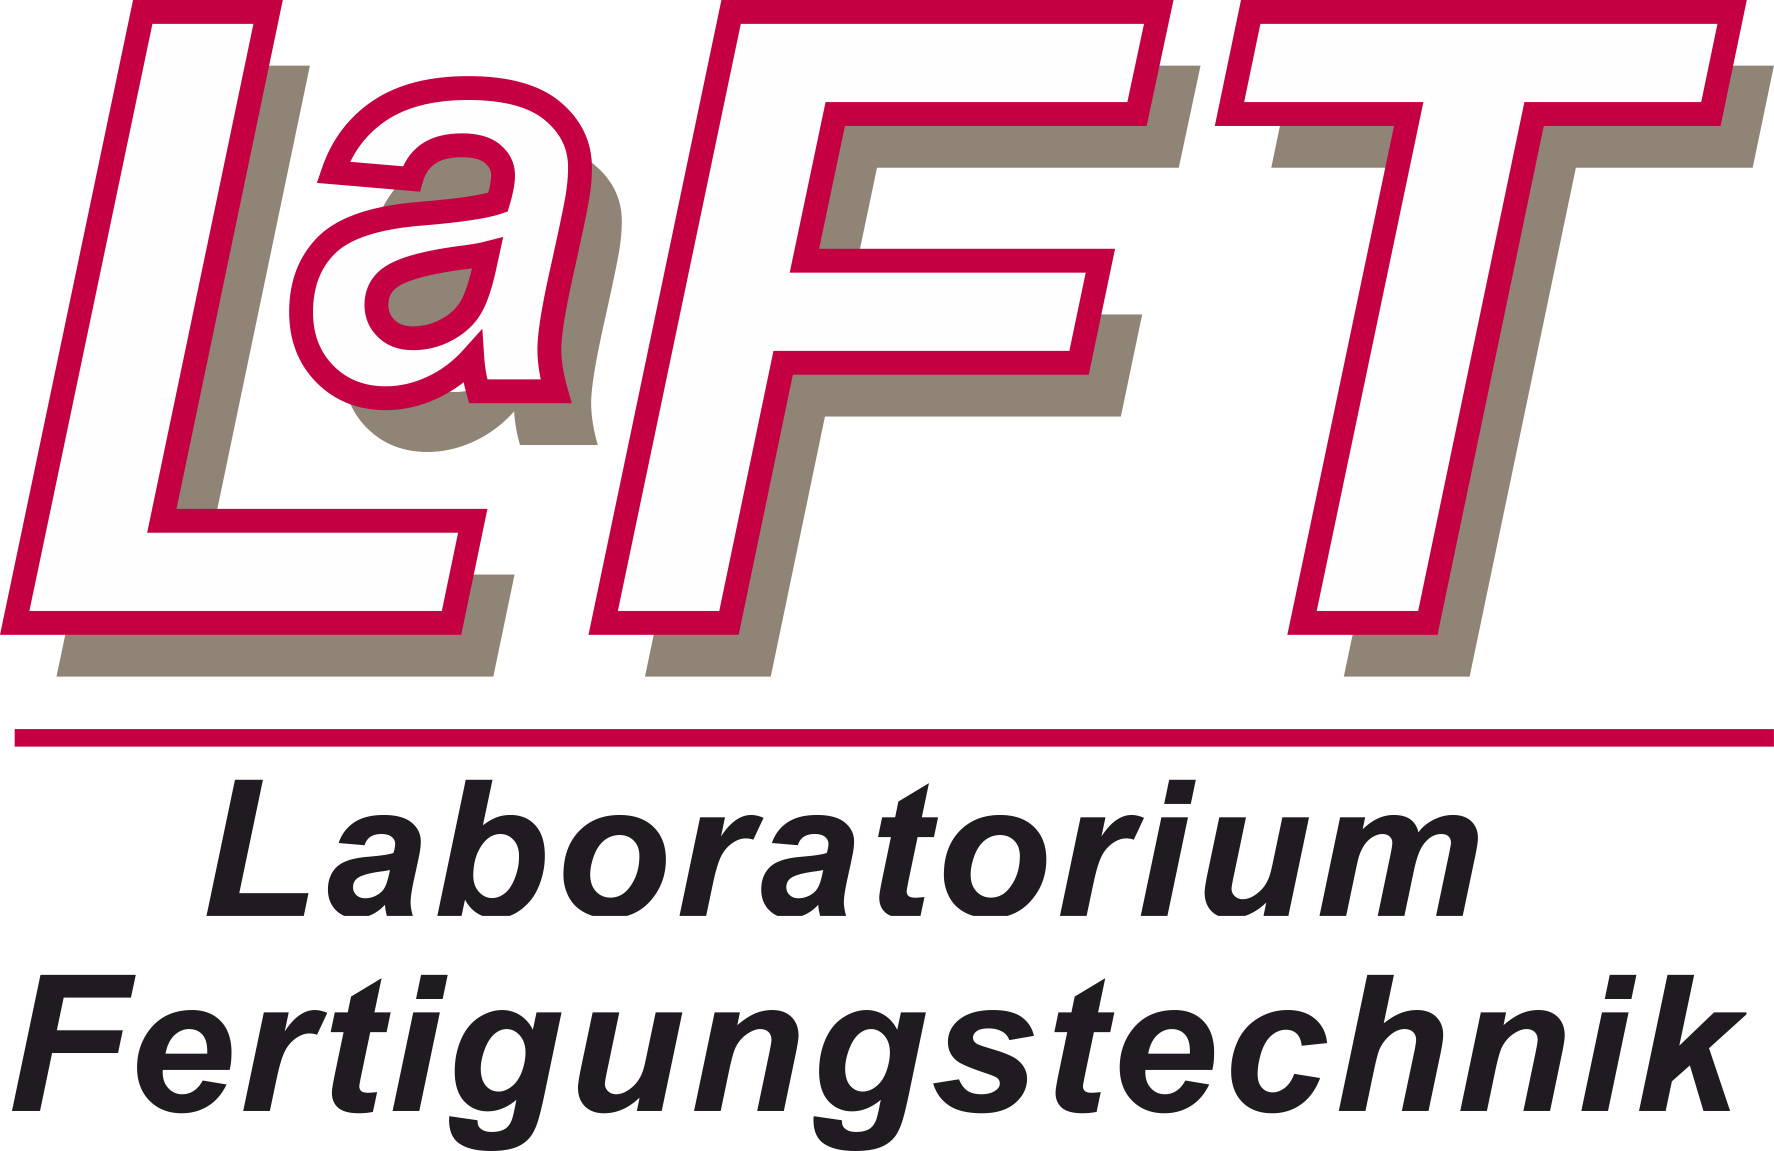 Laboratorium Fertigungstechnik